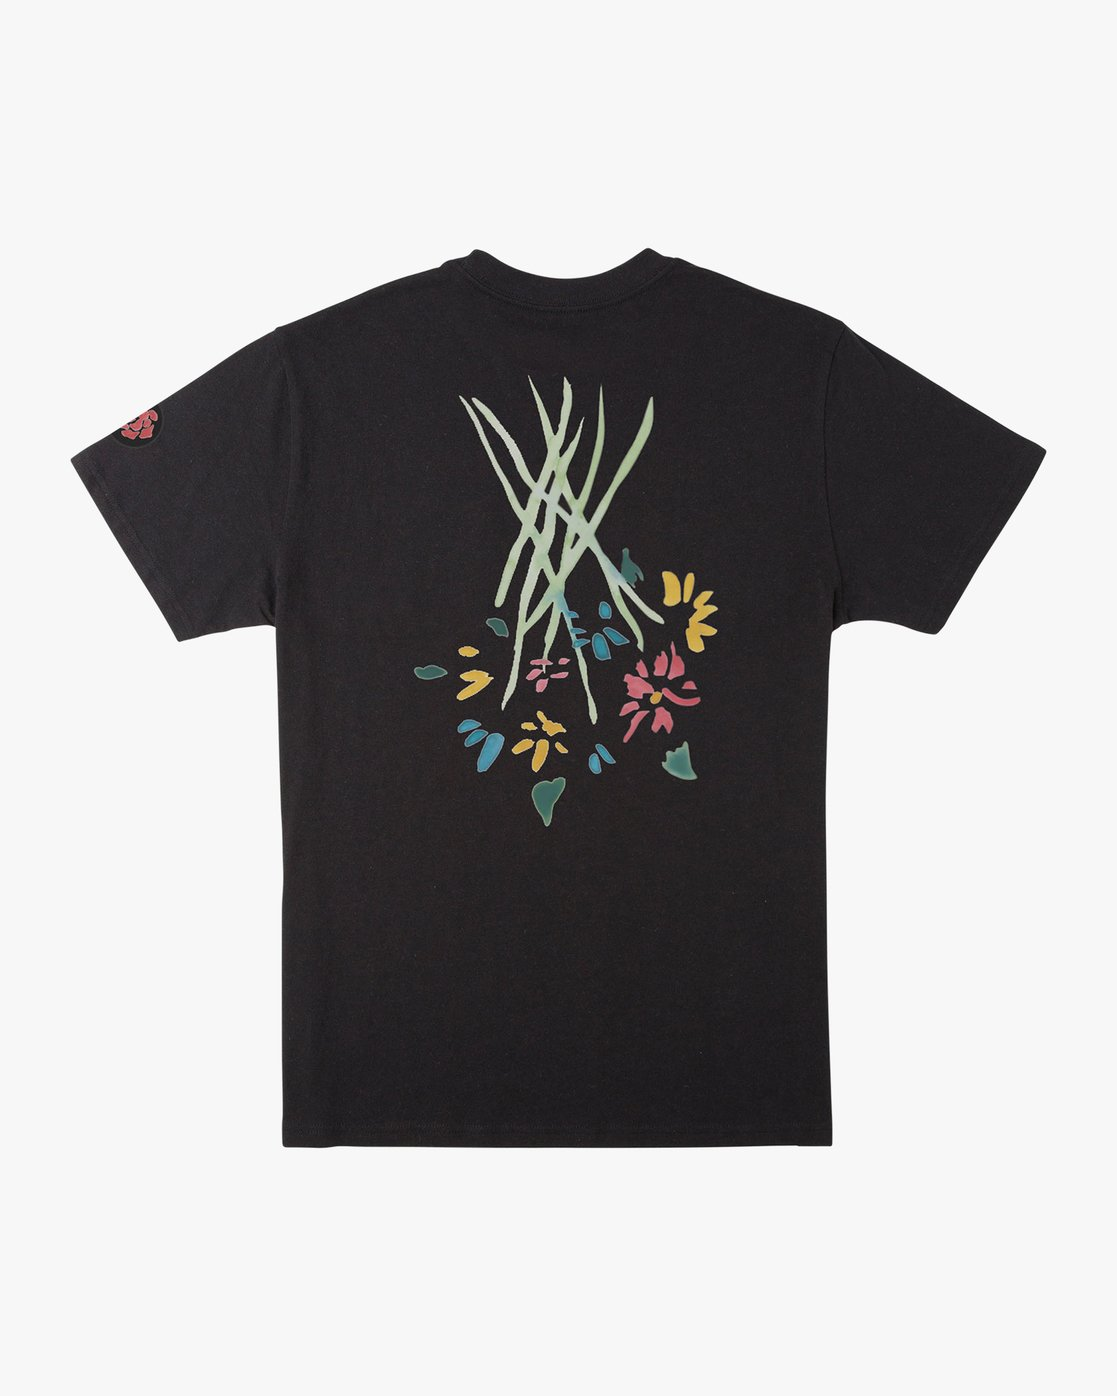 0 AR Lottie Flowers T-Shirt Black M414URLF RVCA